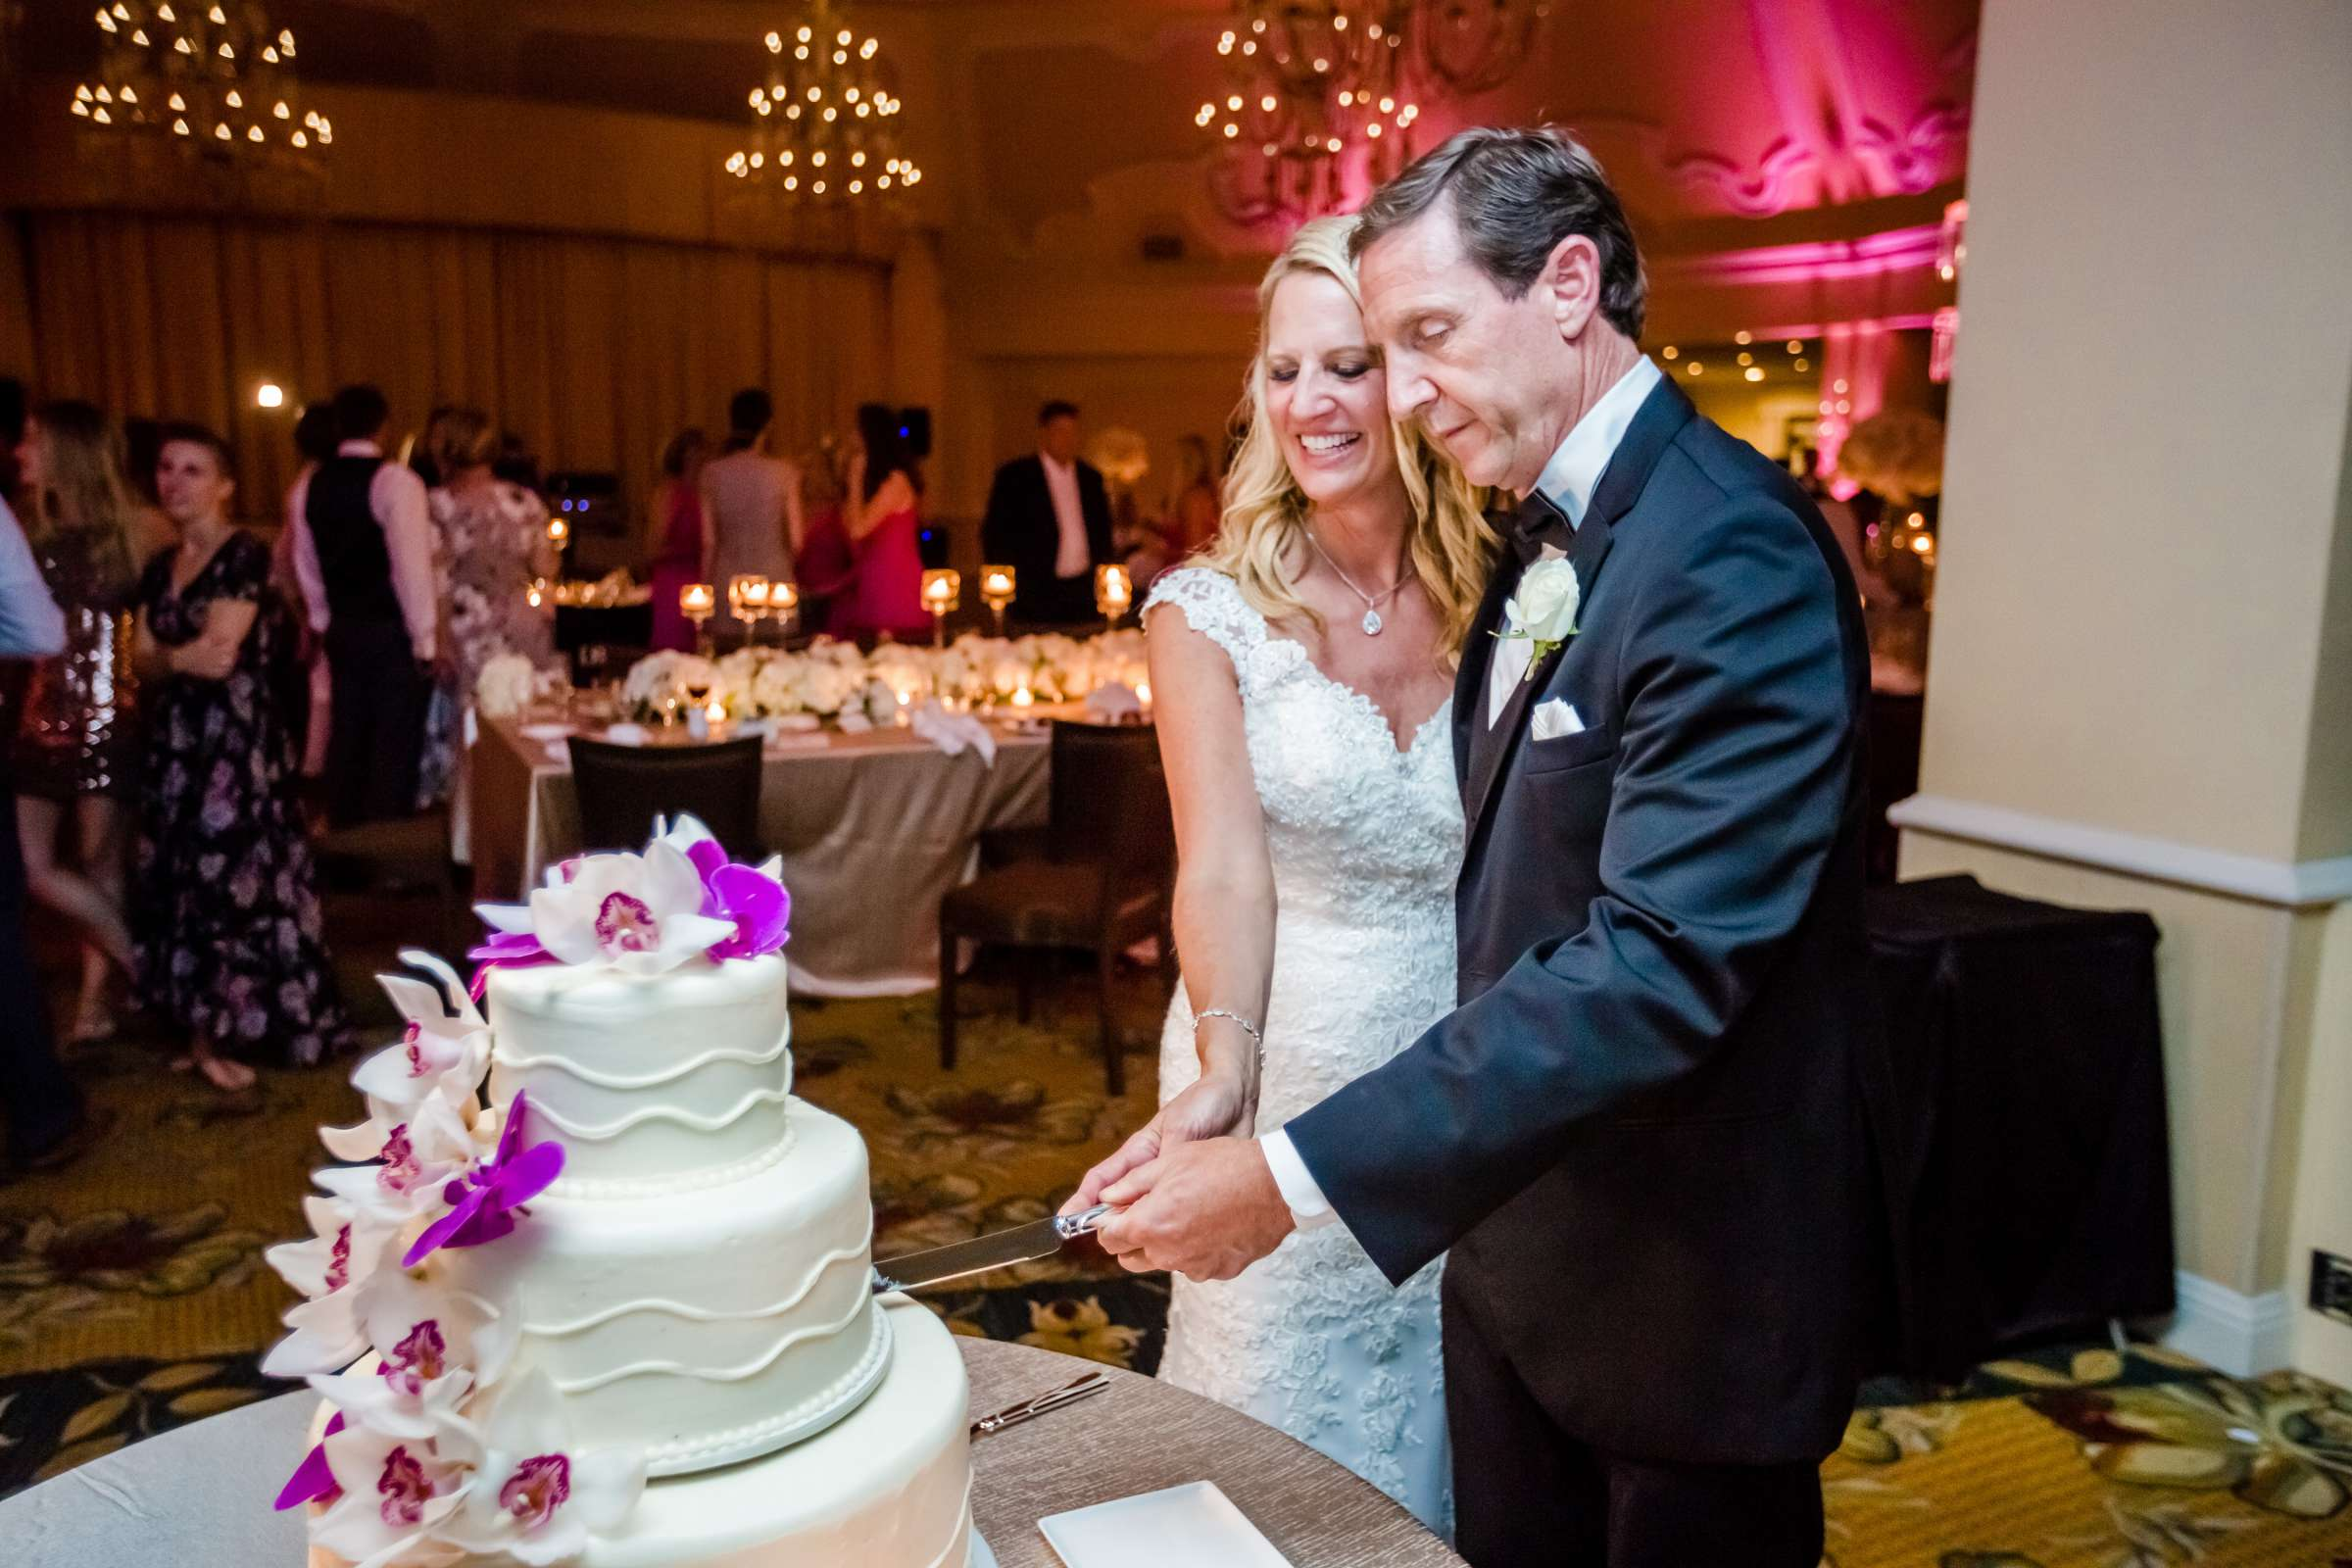 Hotel Del Coronado Wedding coordinated by Creative Affairs Inc, Diane and Paul Wedding Photo #116 by True Photography